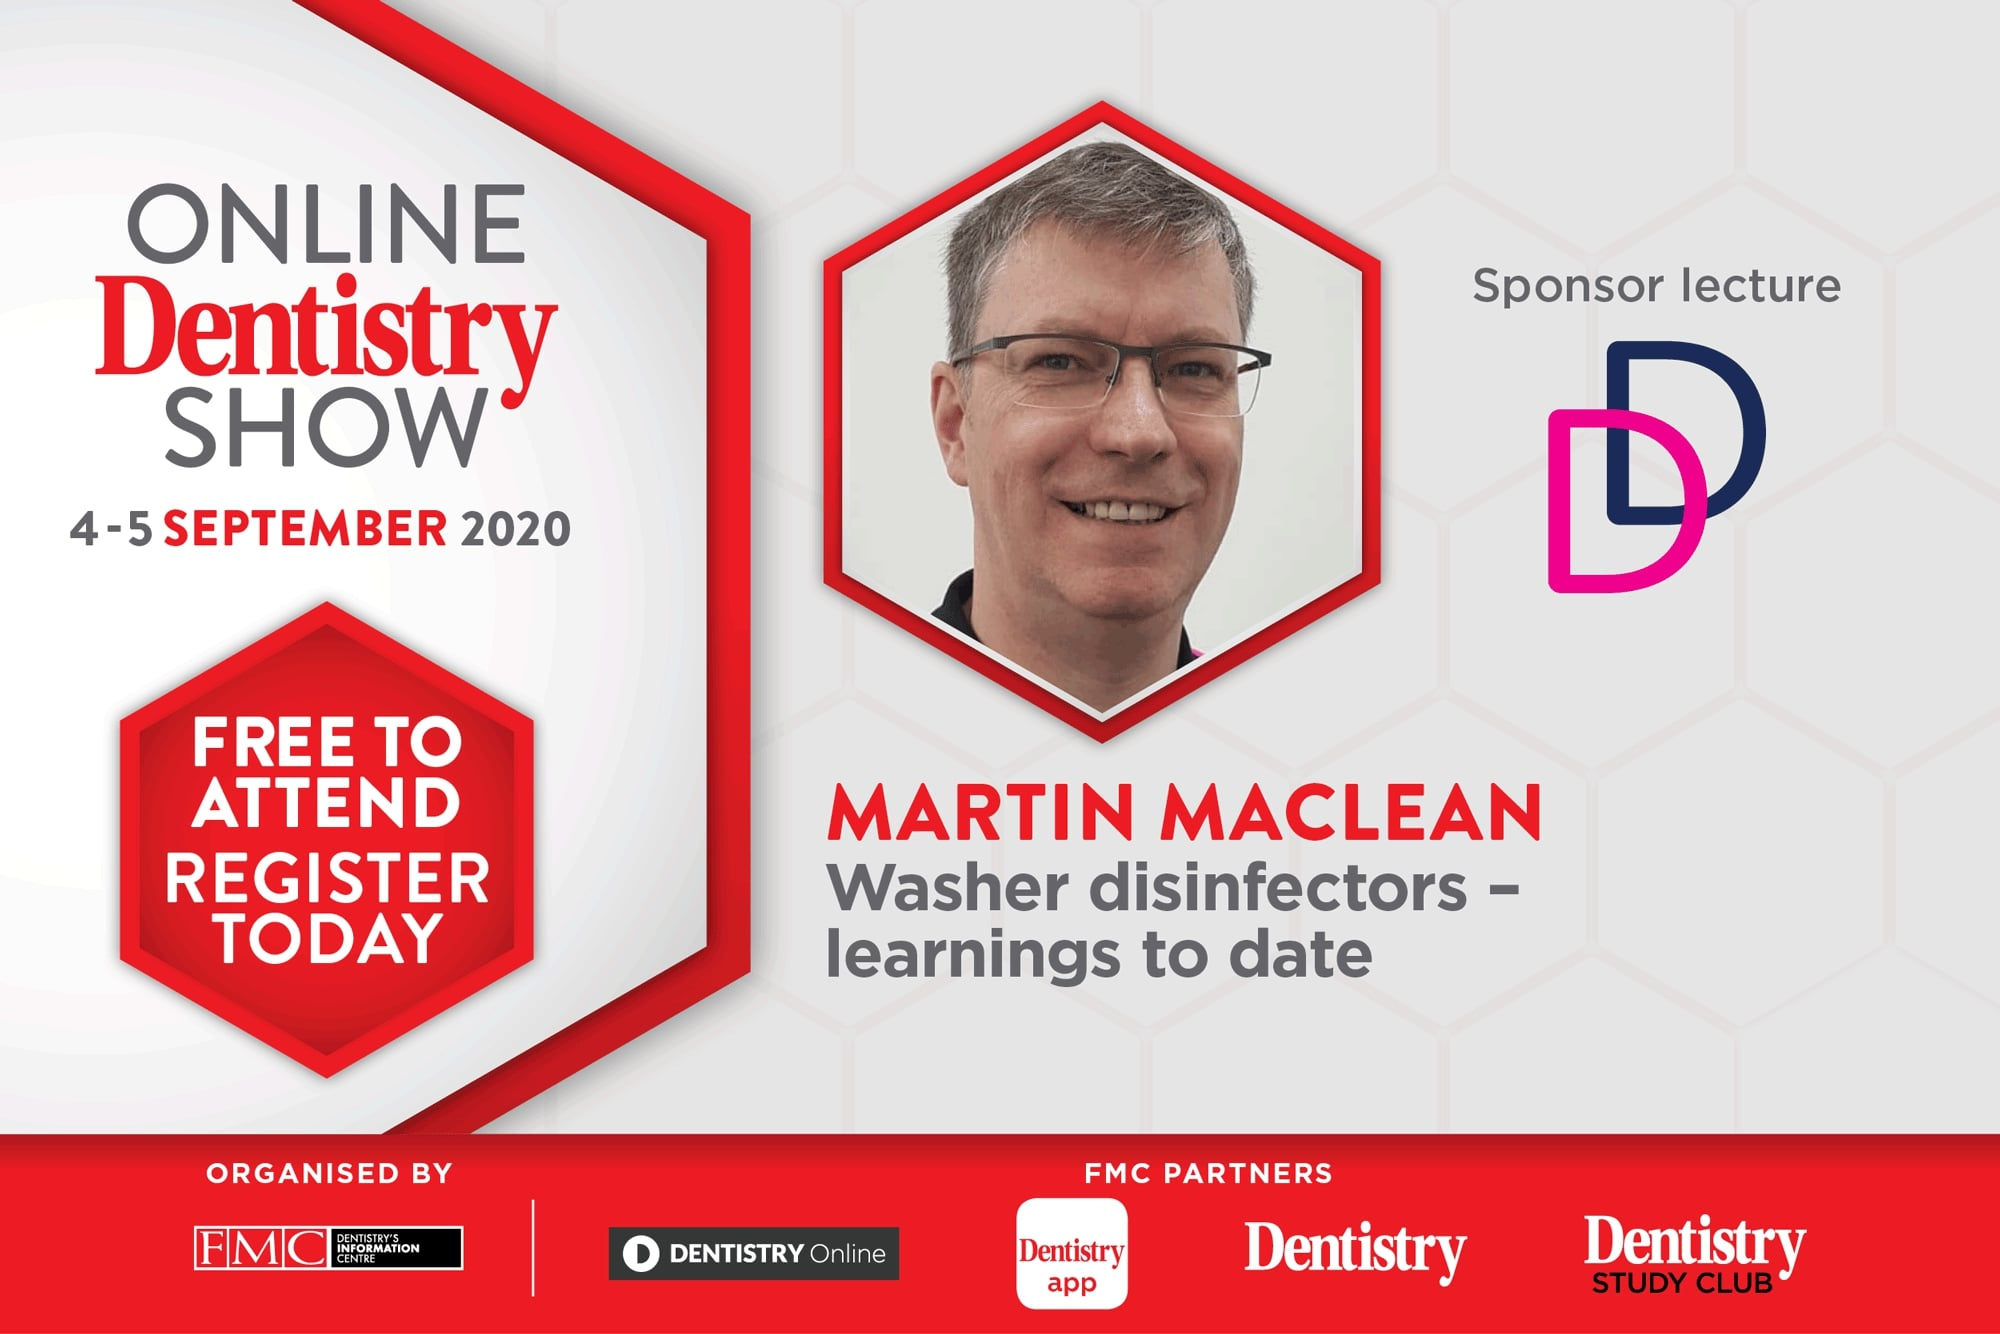 Martin MacLean will speak at the Online Dentistry Show